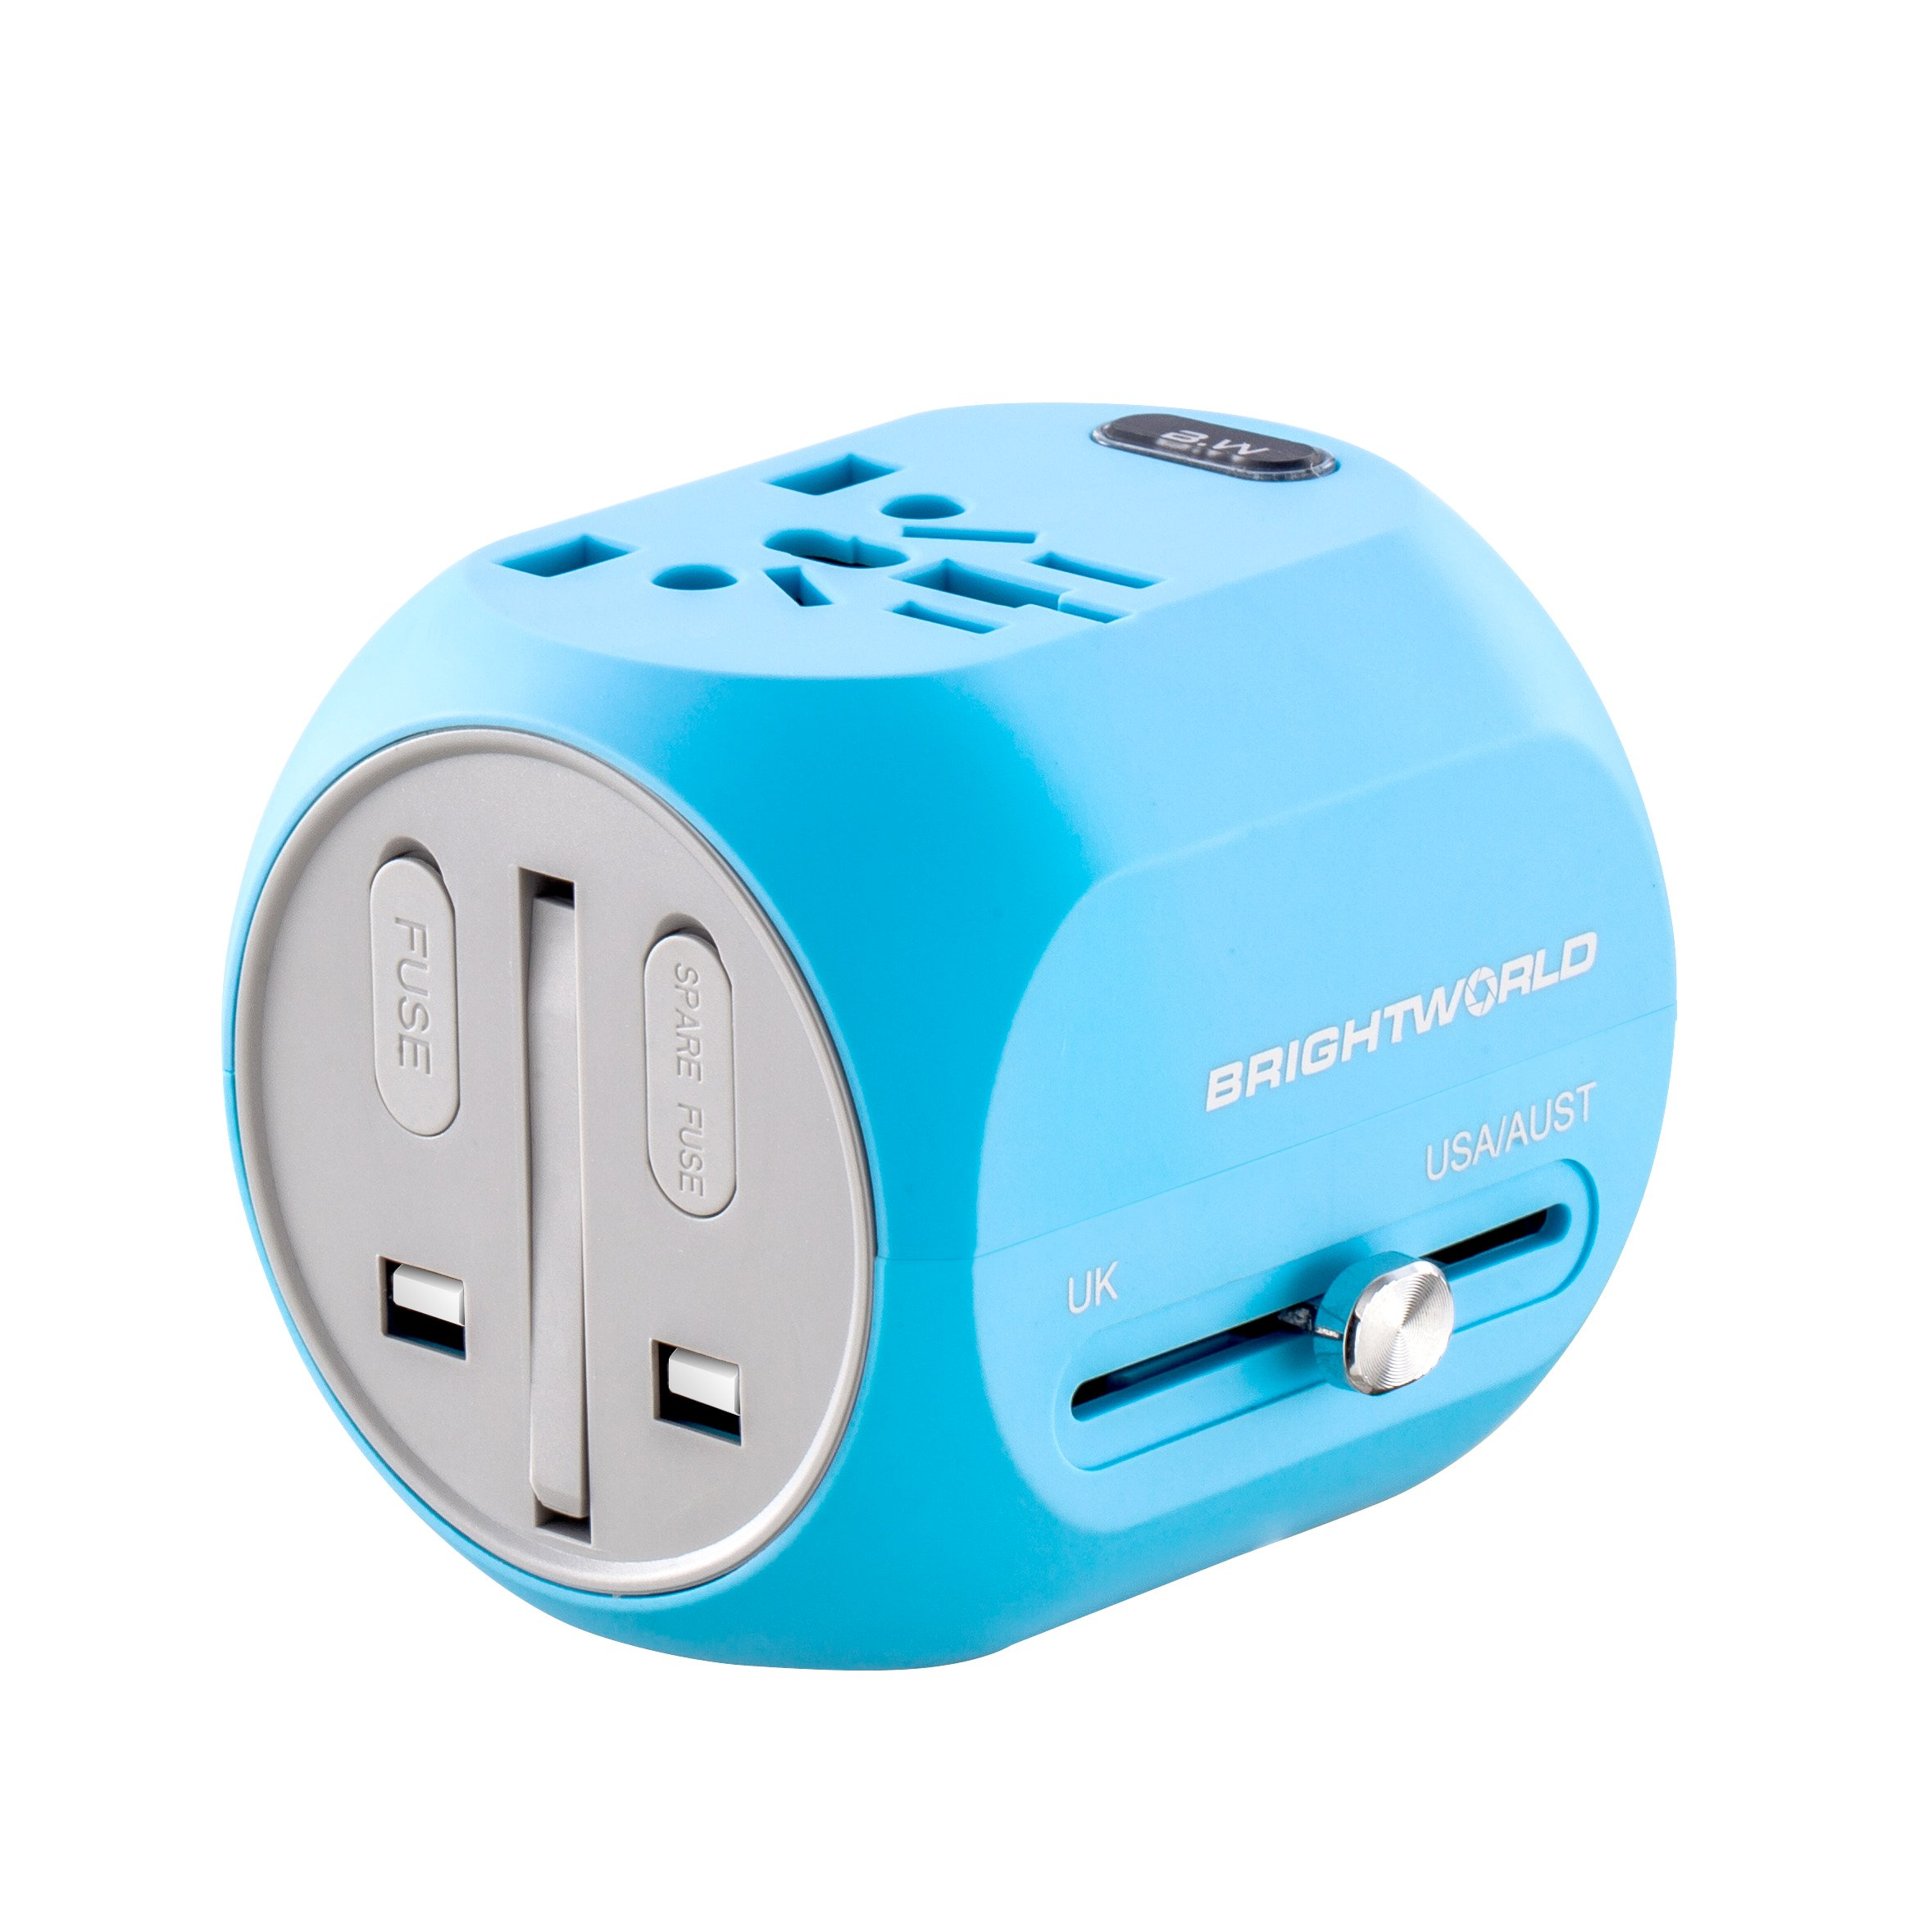 BRIGHTWORLD Travel Adapter, Worldwide All in One Universal Travel Charger Kit and Power Plug Converter with USB and Type C Charging Port Kit for Cell Phone Laptop Camera in USA UK Europe Blue